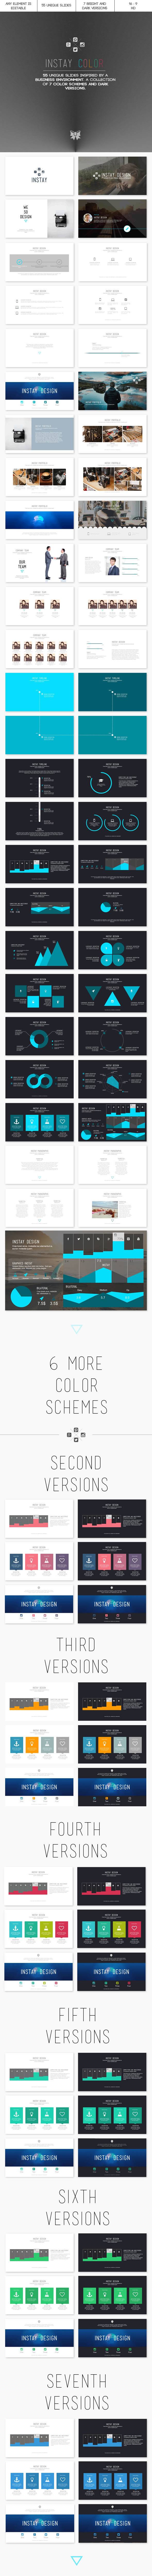 Instay Color 2.0 - PowerPoint Template - Abstract PowerPoint Templates